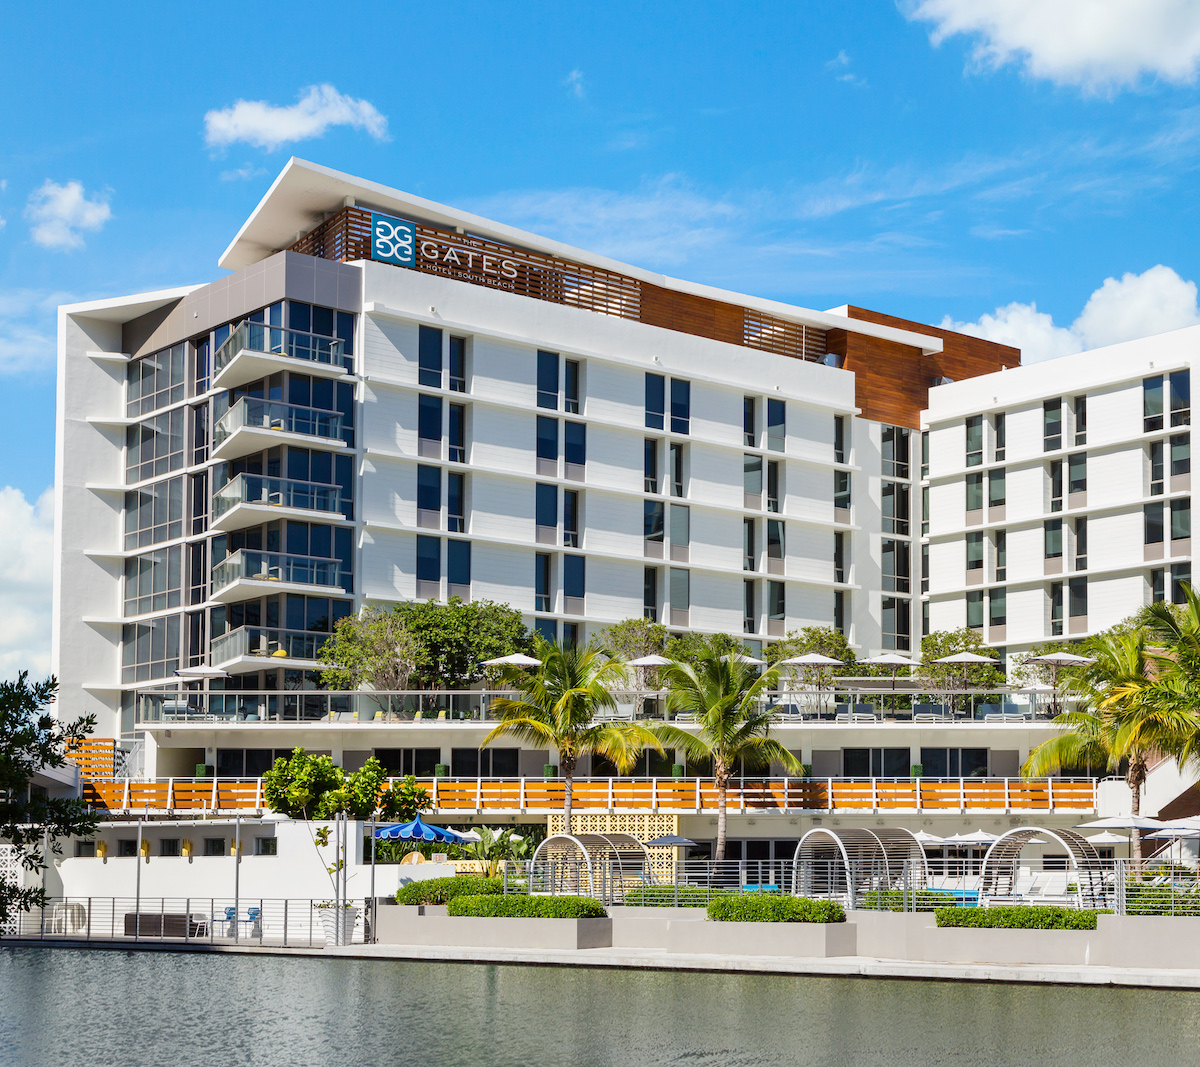 review stay in style at the gates hotel south beach